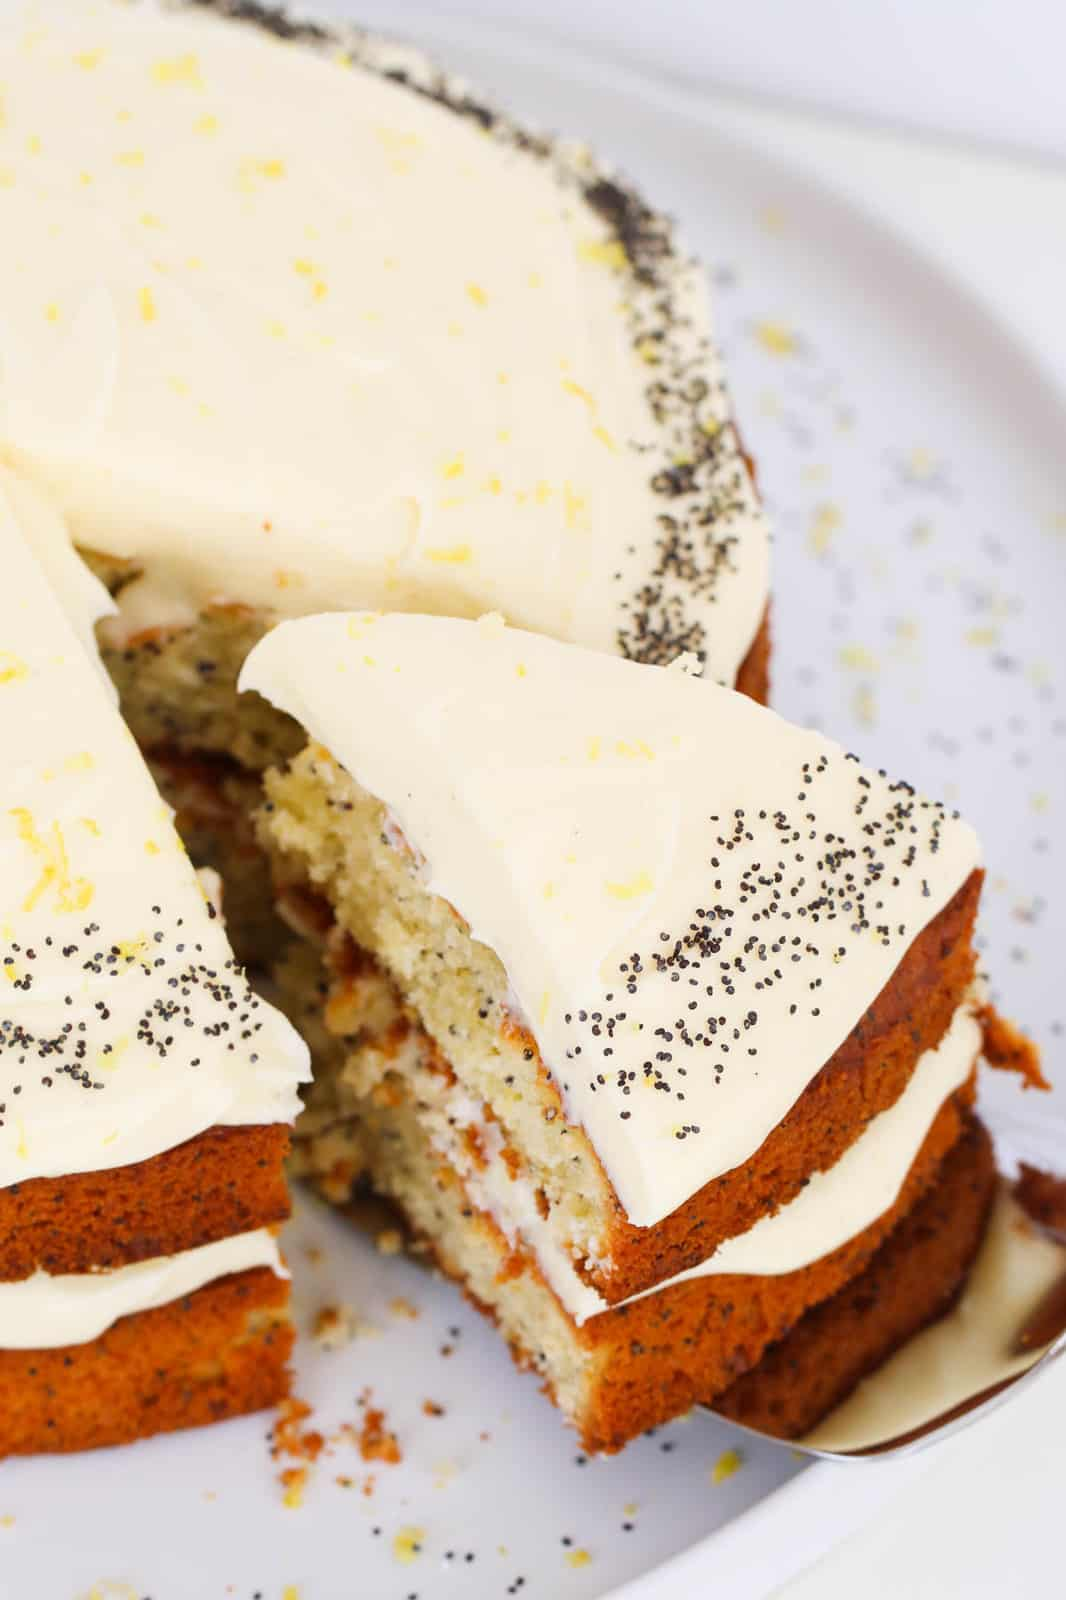 A slice of cream cheese frosted lemon and poppy seed cake being removed with a cake slice.